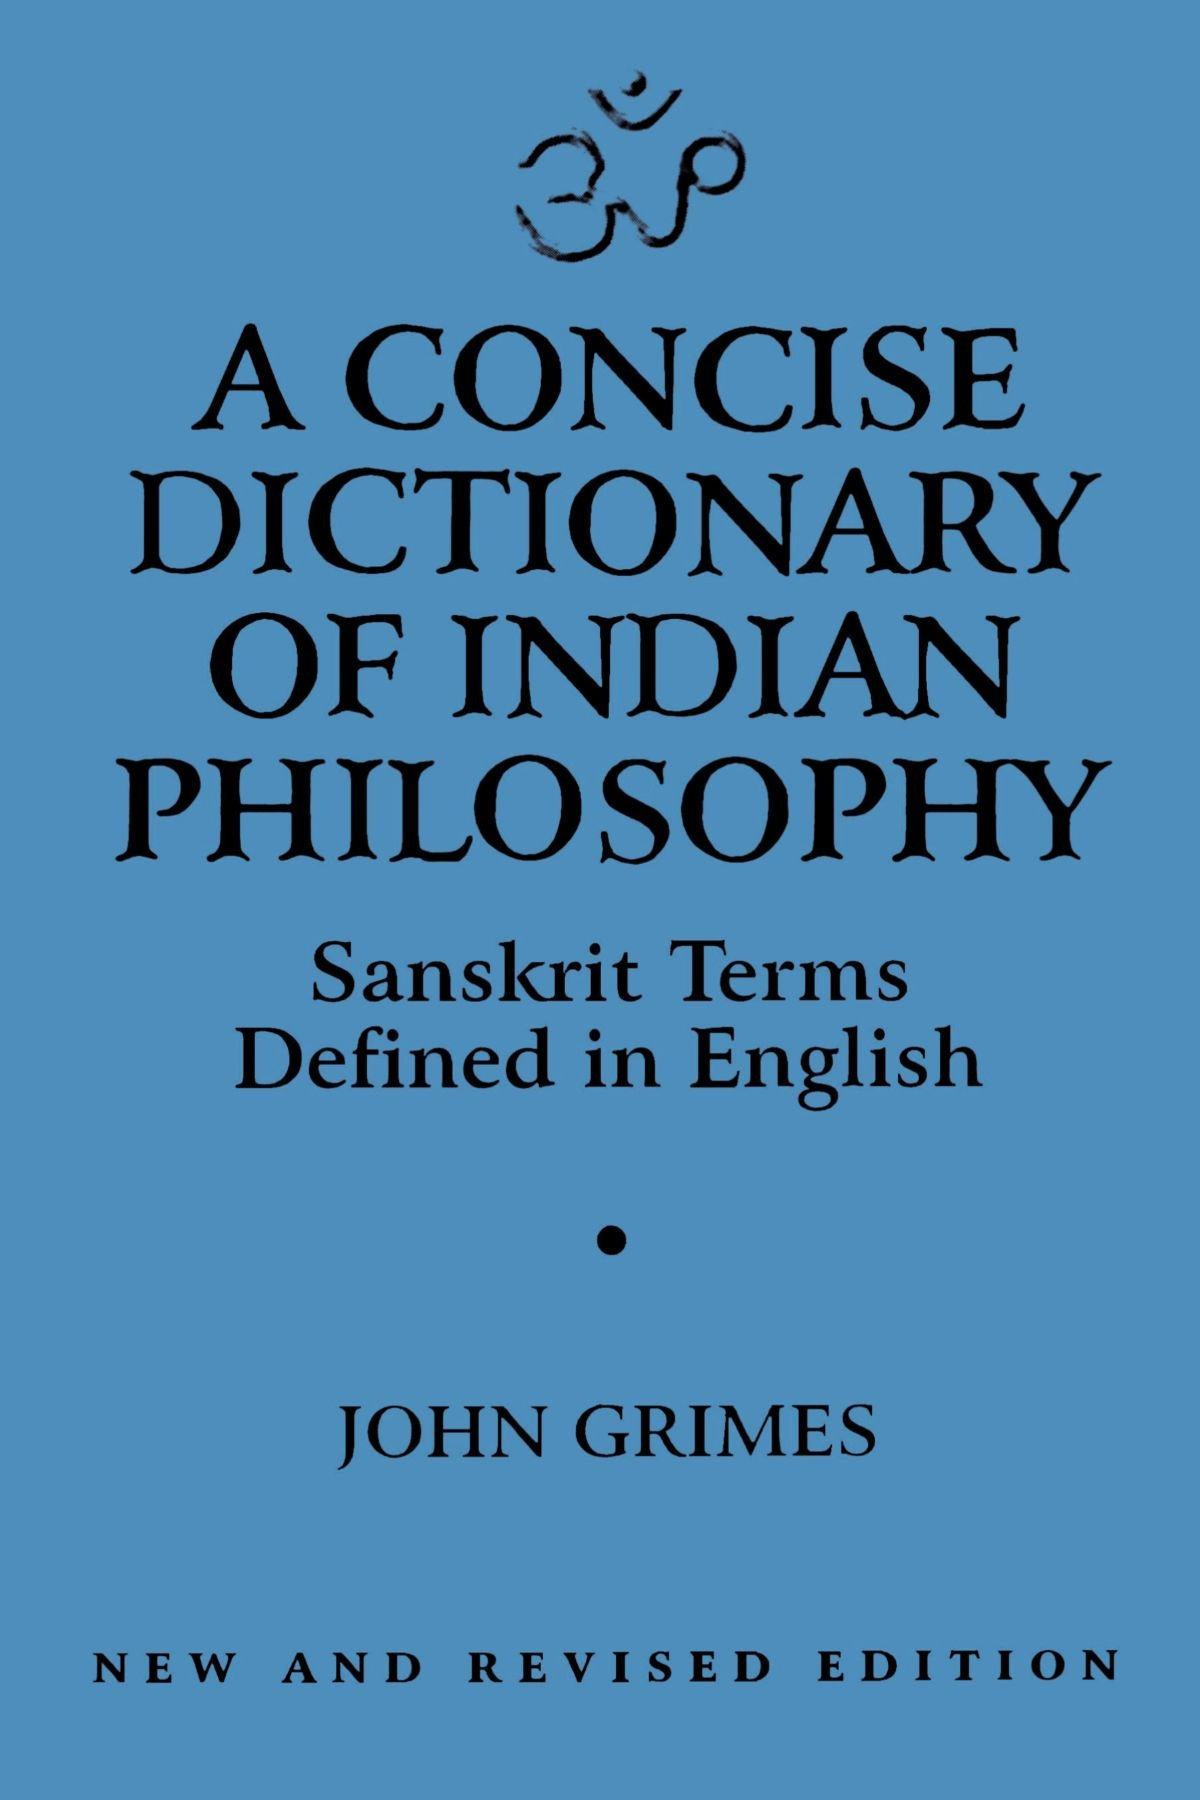 Buy a concise dictionary of indian philosophy sanskrit terms buy a concise dictionary of indian philosophy sanskrit terms defined in english new and revised edition book online at low prices in india a concise kristyandbryce Images